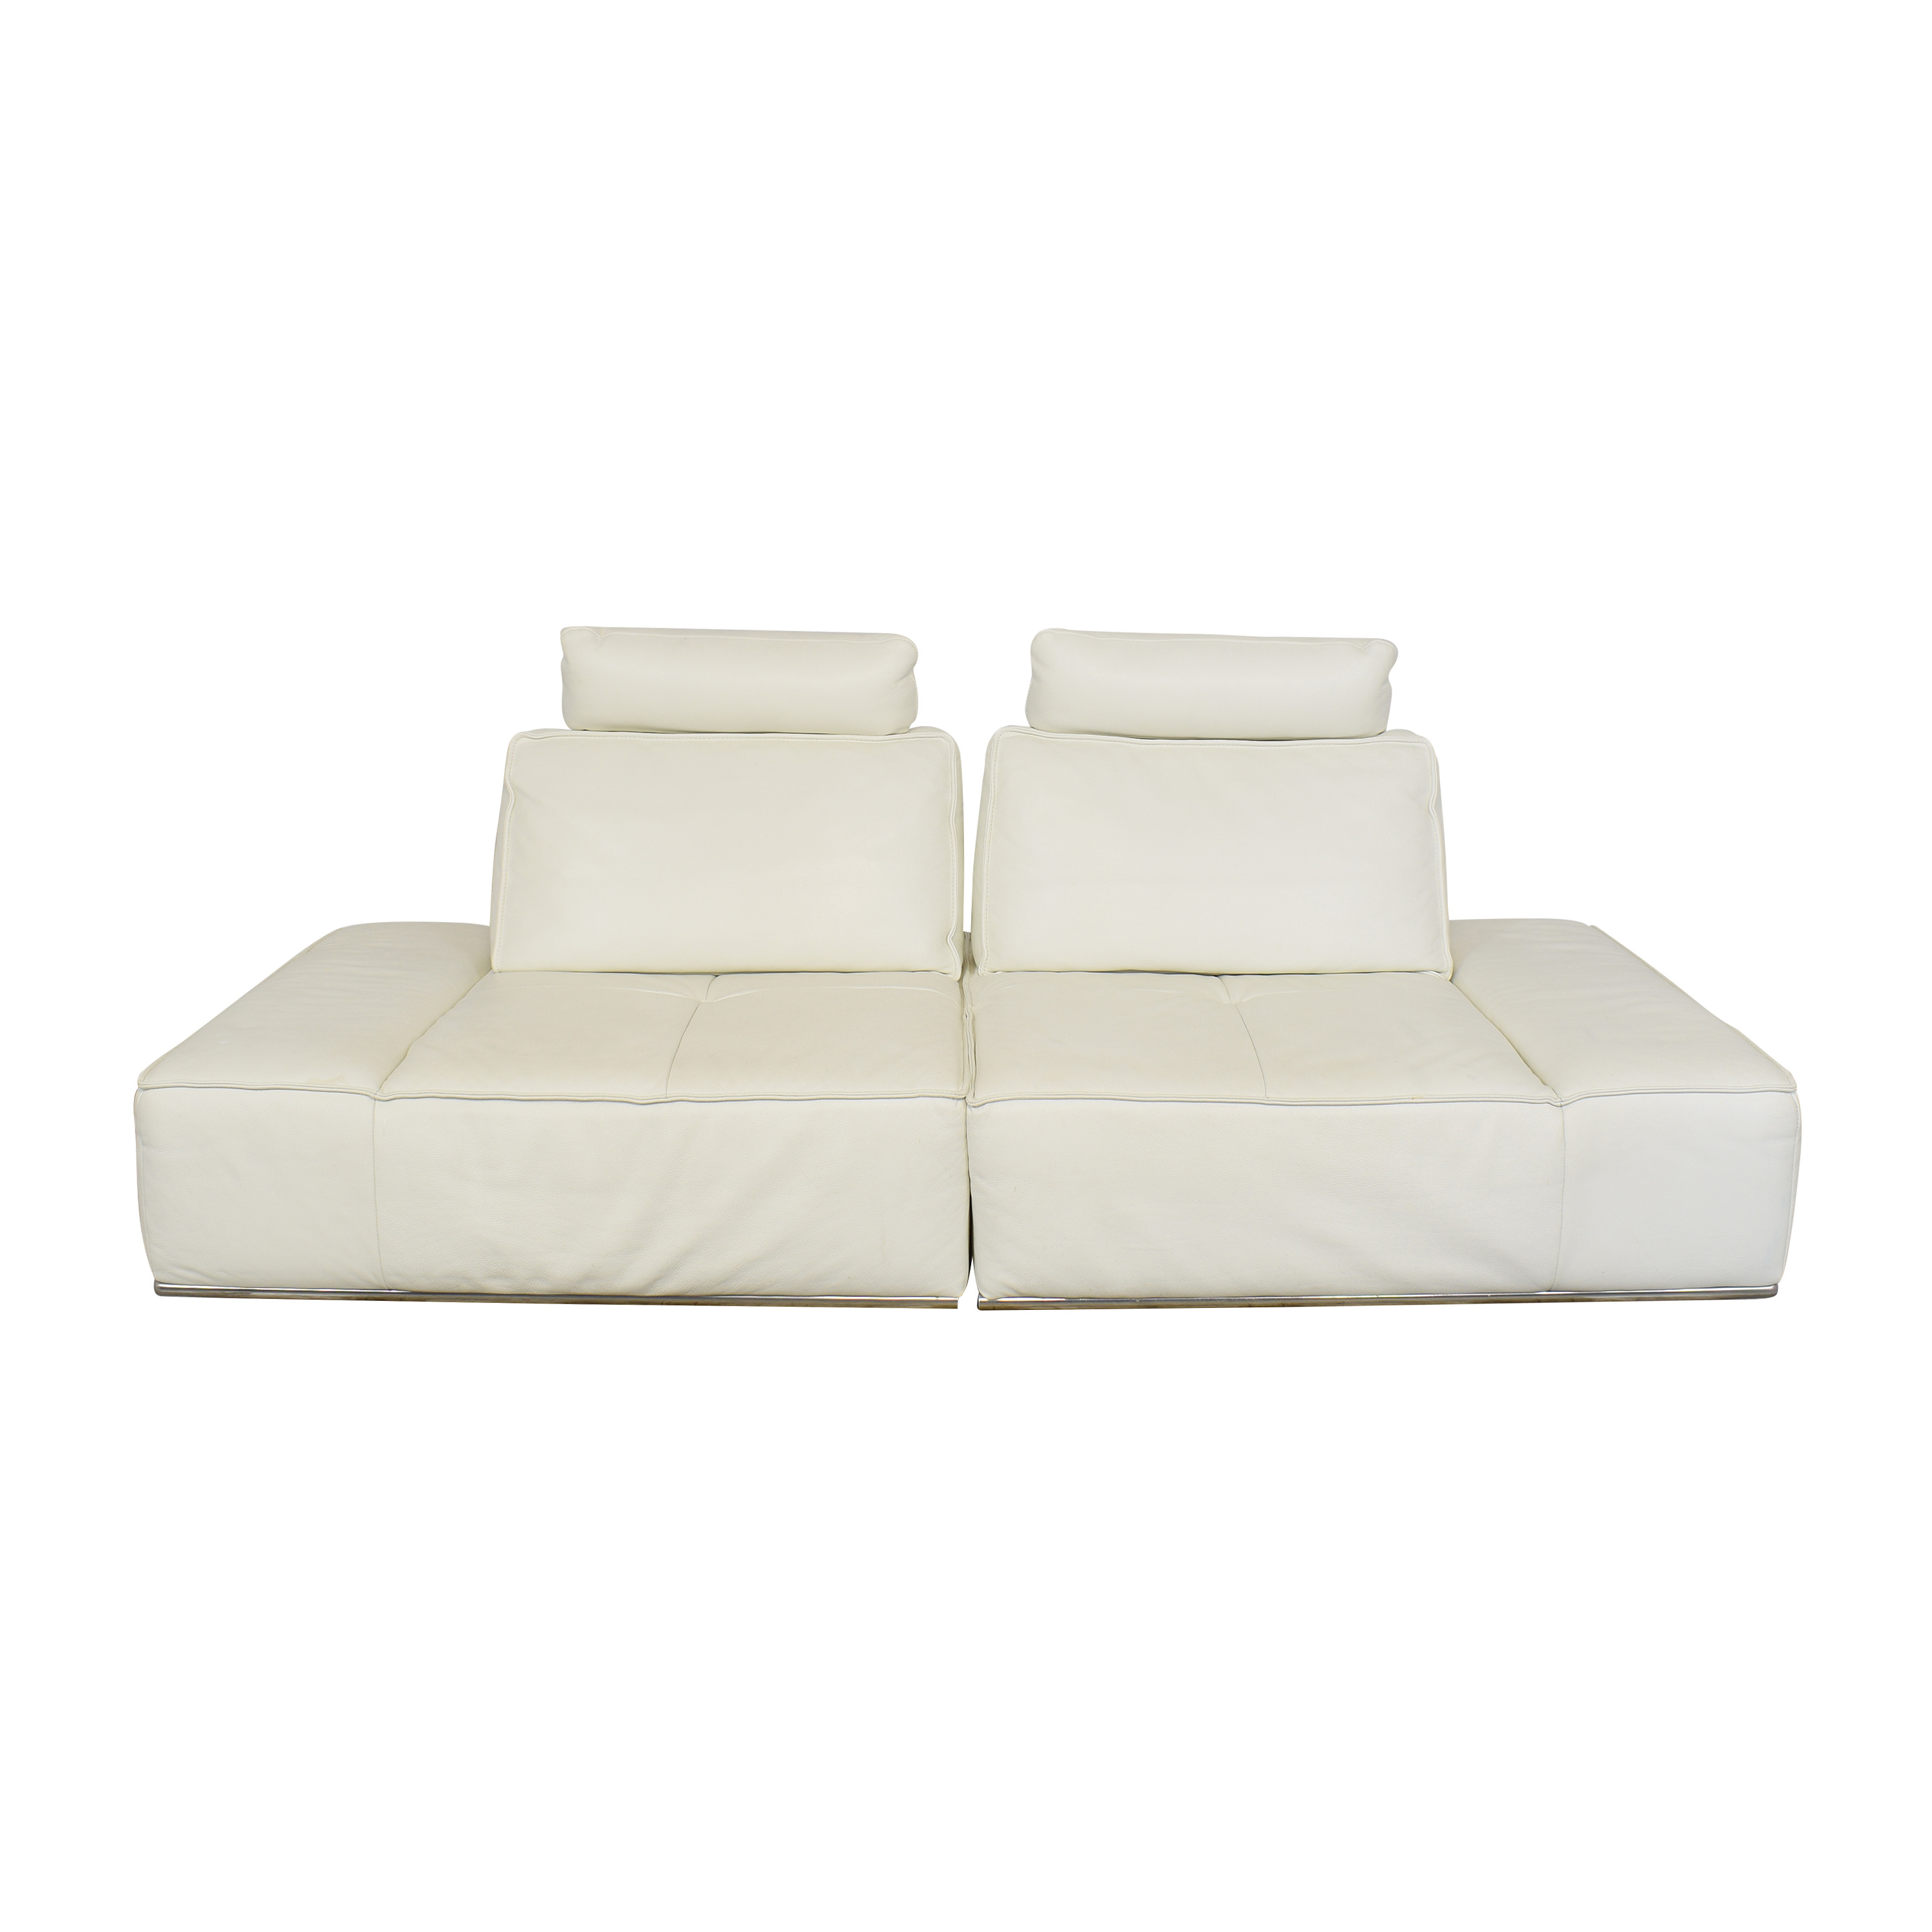 Canal Furniture Canal Furniture Modern Style Sofa second hand